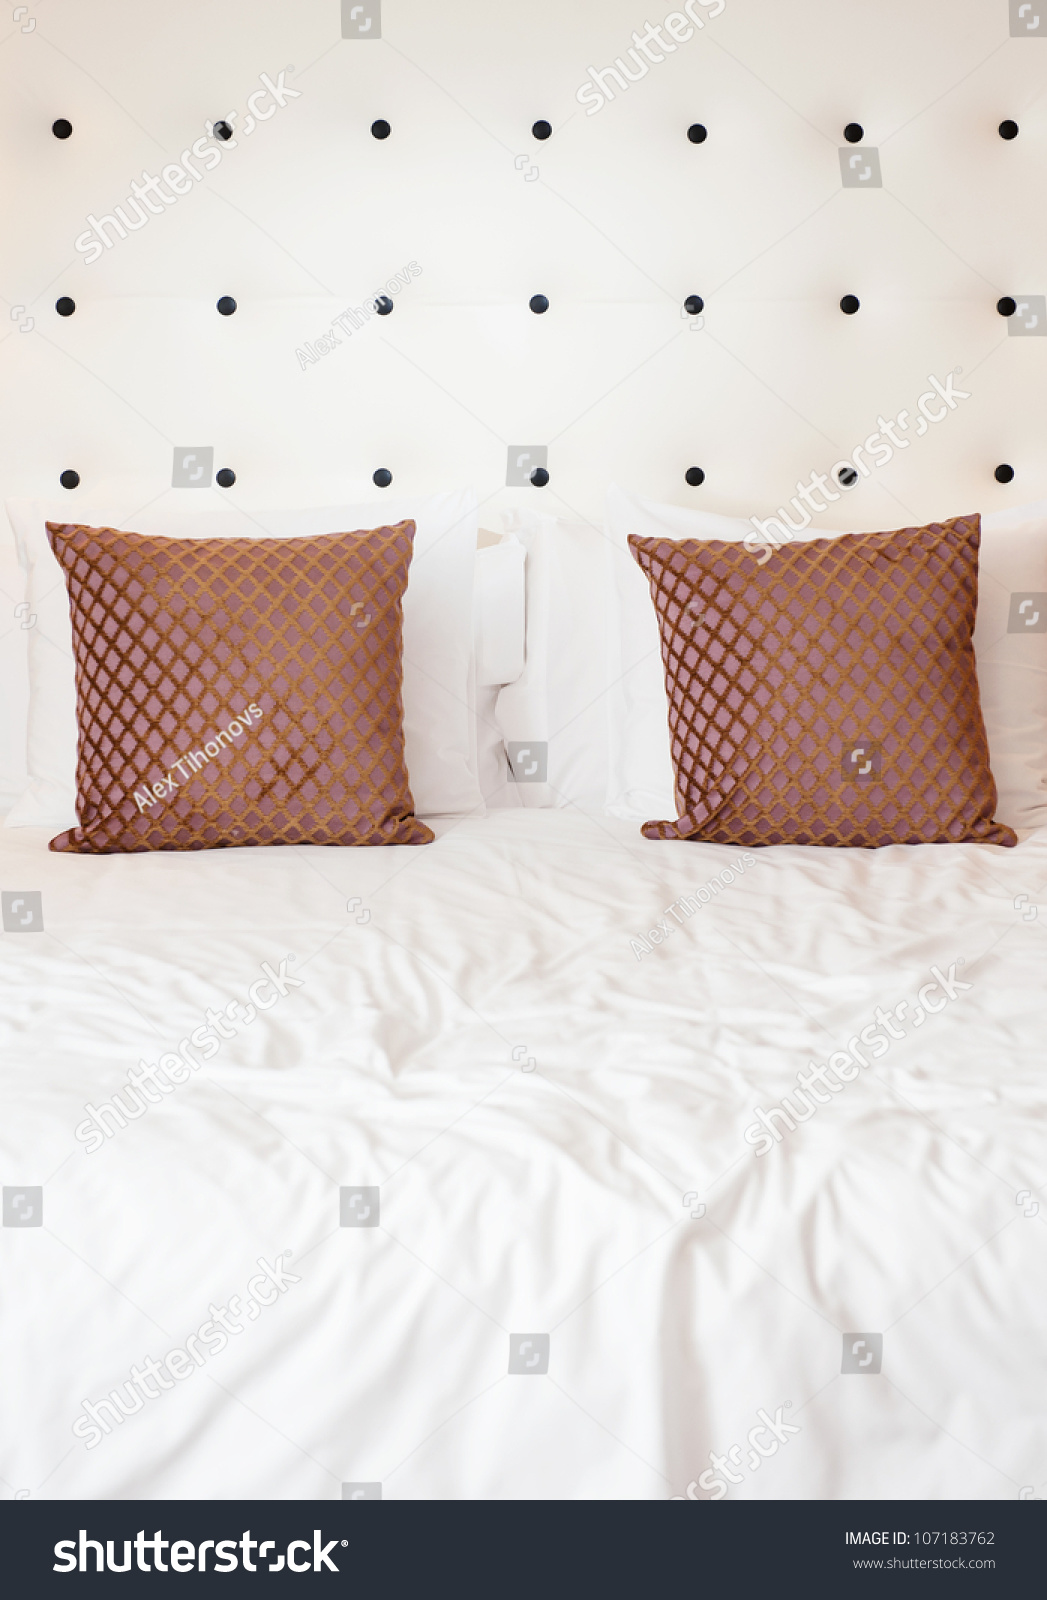 Two Brown Decorative Cushions White Pillows Stock Photo Edit Now 107183762